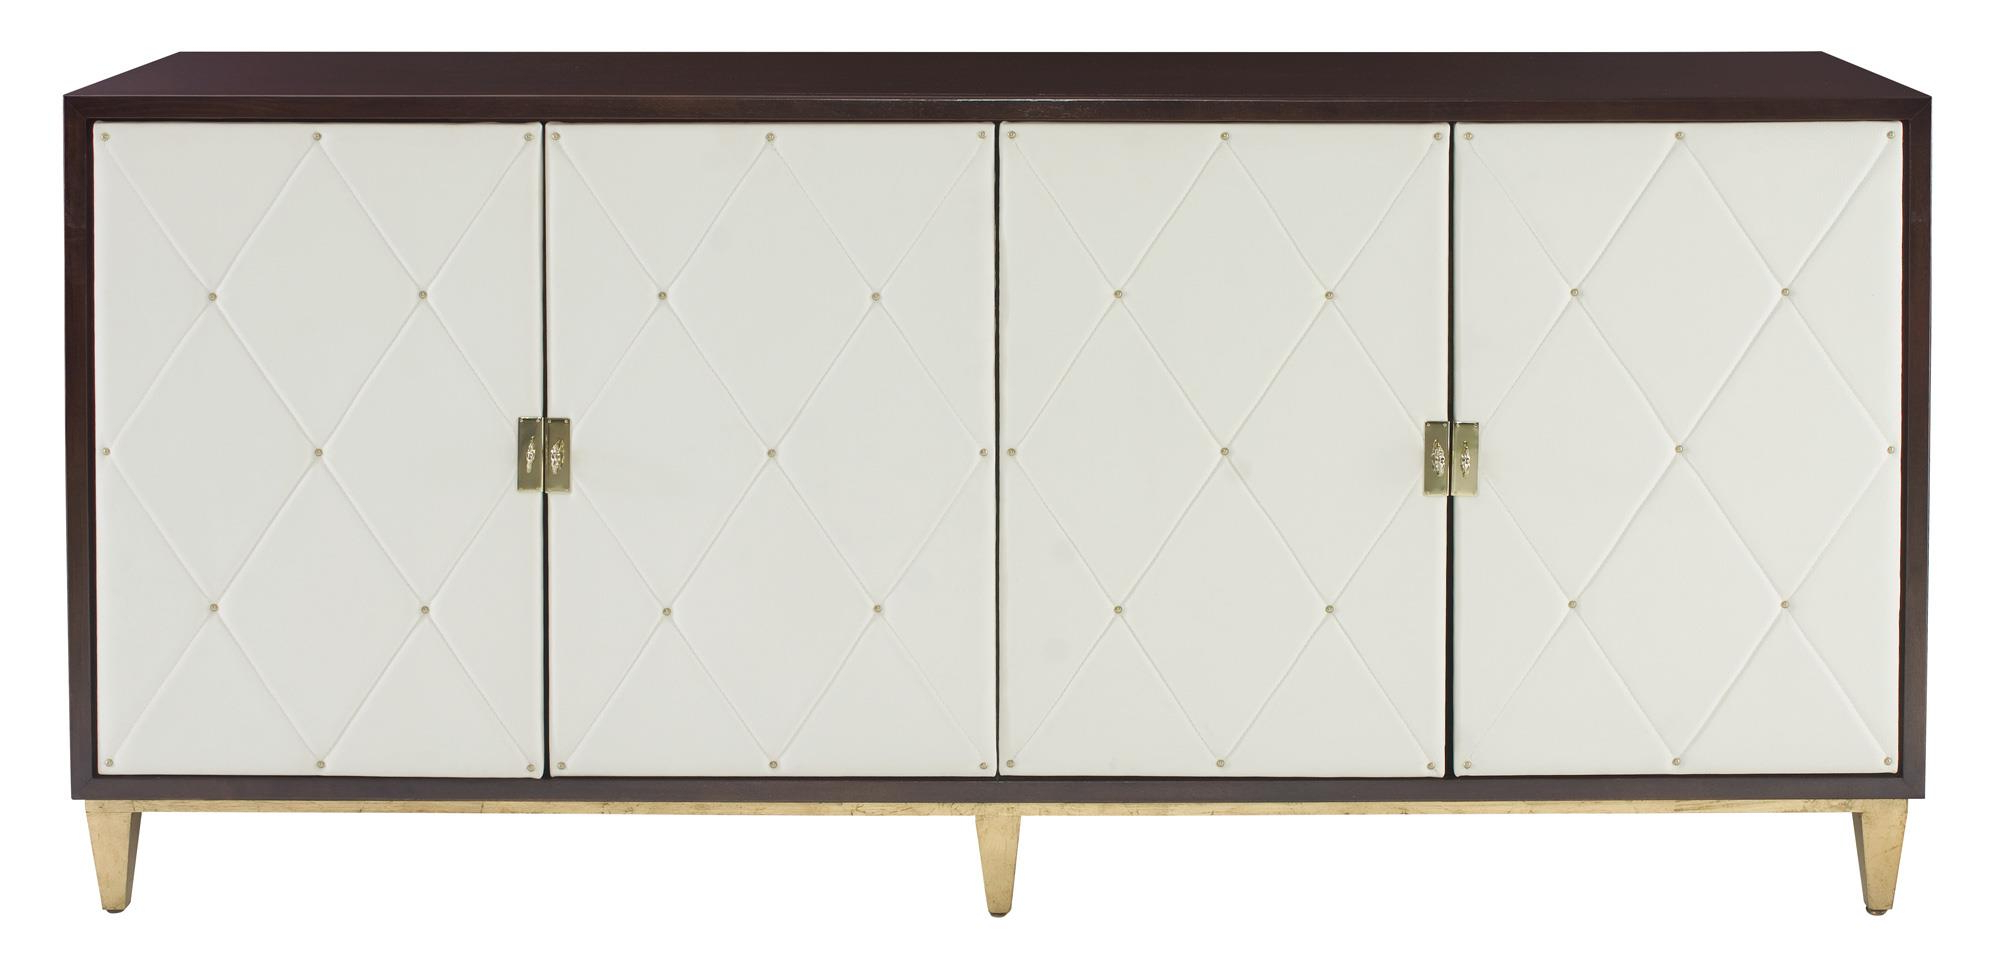 Bernhardt Jet Set 4 Door Buffet With Quilted Door Fronts With Regard To Contemporary Wooden Buffets With Four Open Compartments And Metal Tapered Legs (View 3 of 20)